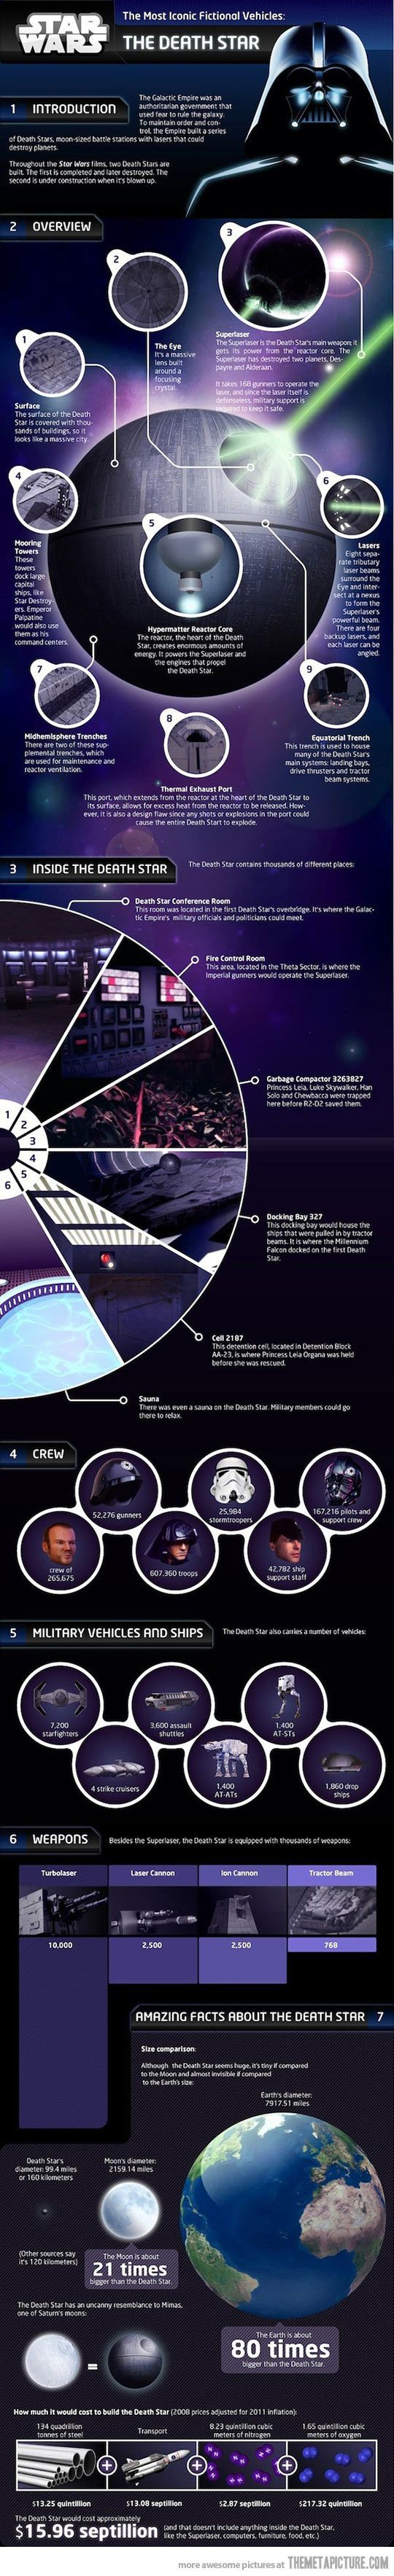 How much it would cost to build The Death Star…